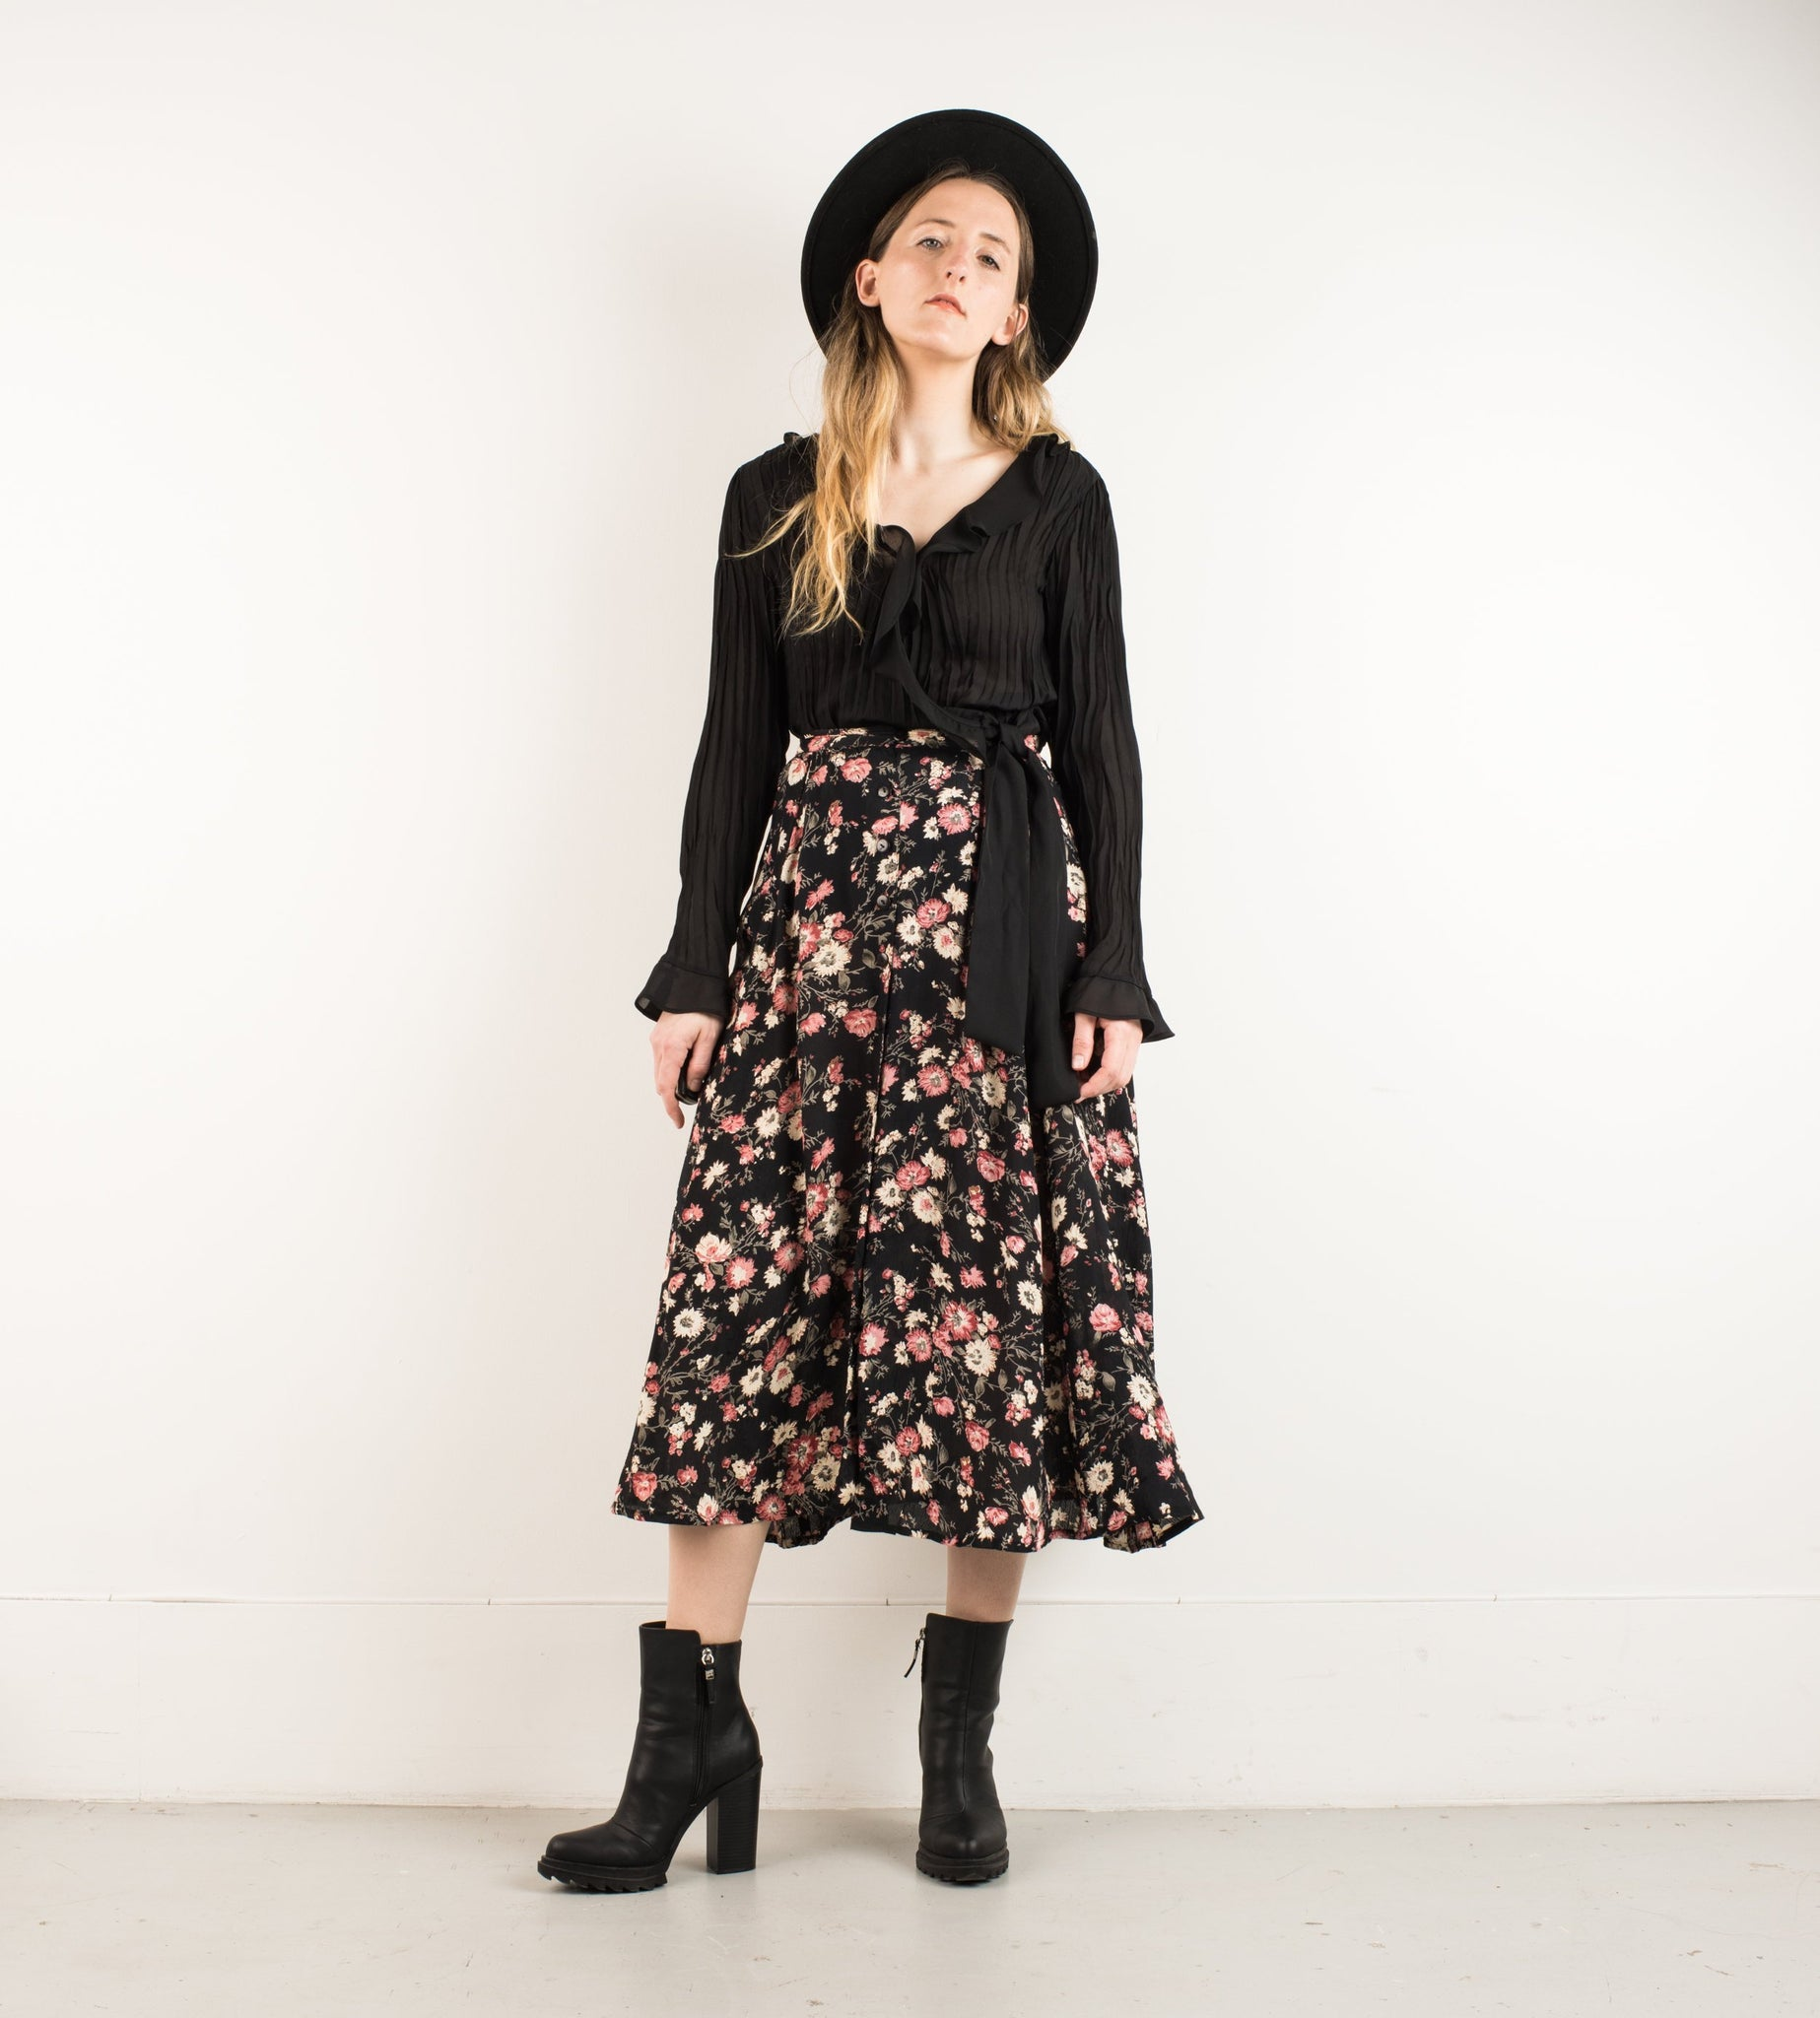 Vintage Black Floral Sheer Skirt / M - Closed Caption